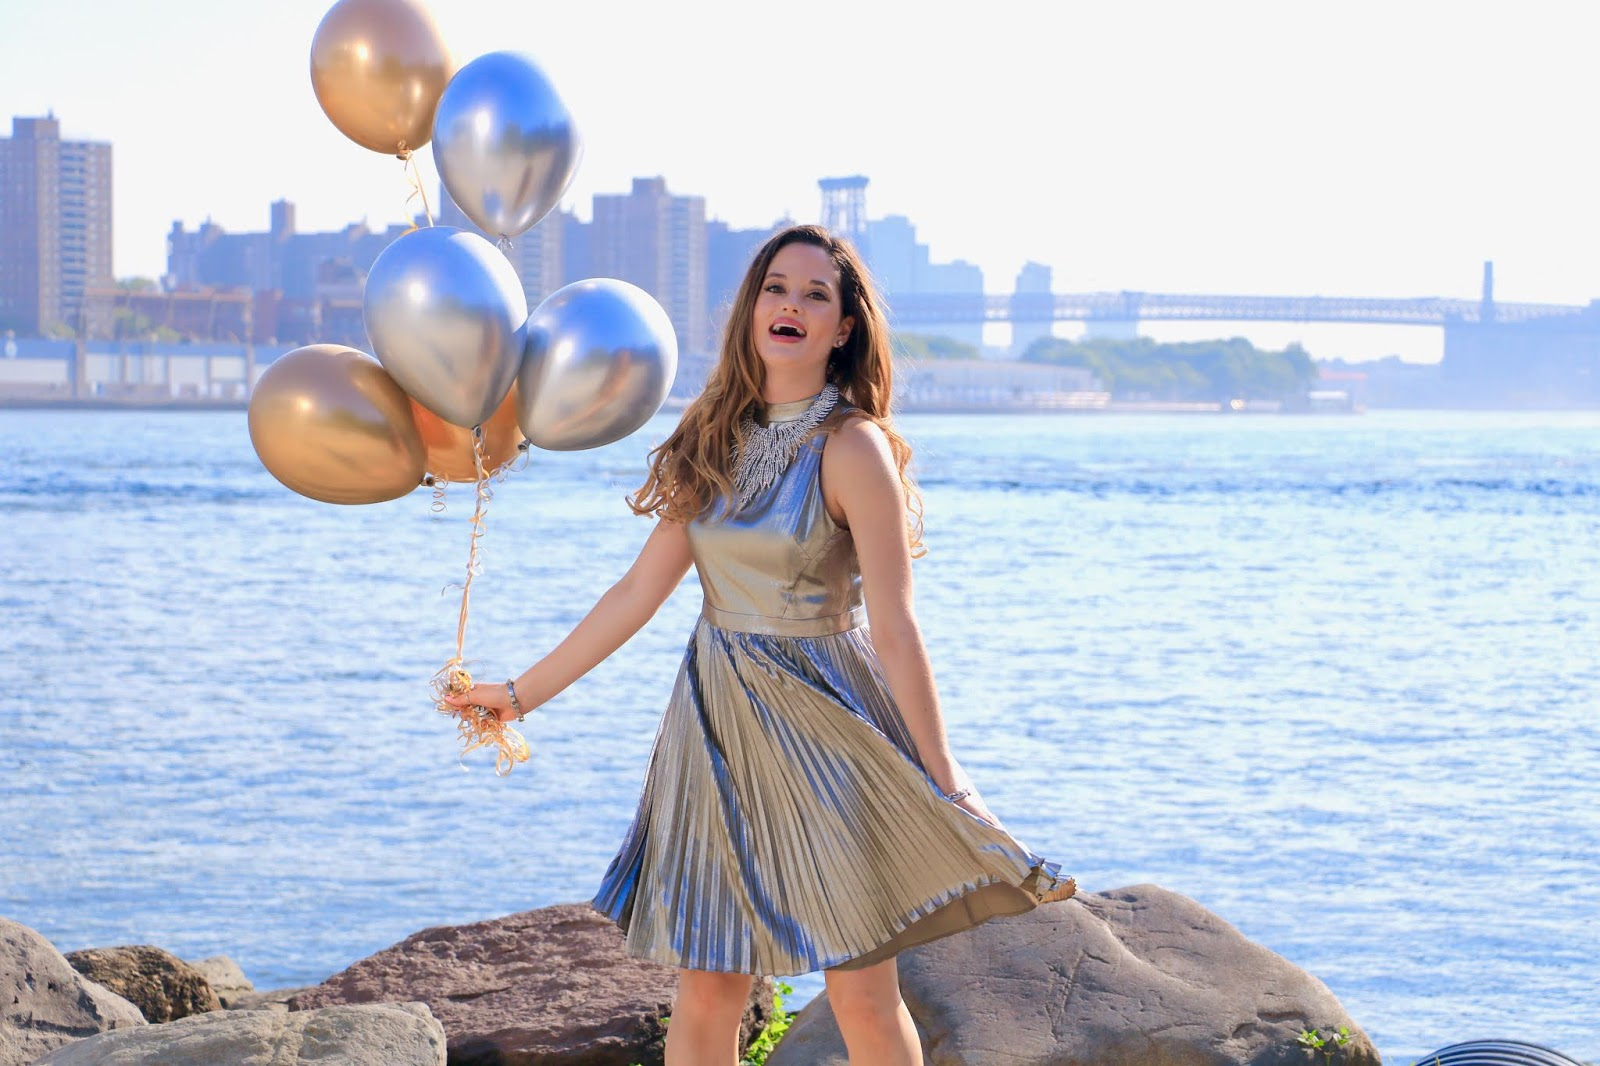 Nyc fashion blogger Kathleen Harper wearing a gold metallic dress